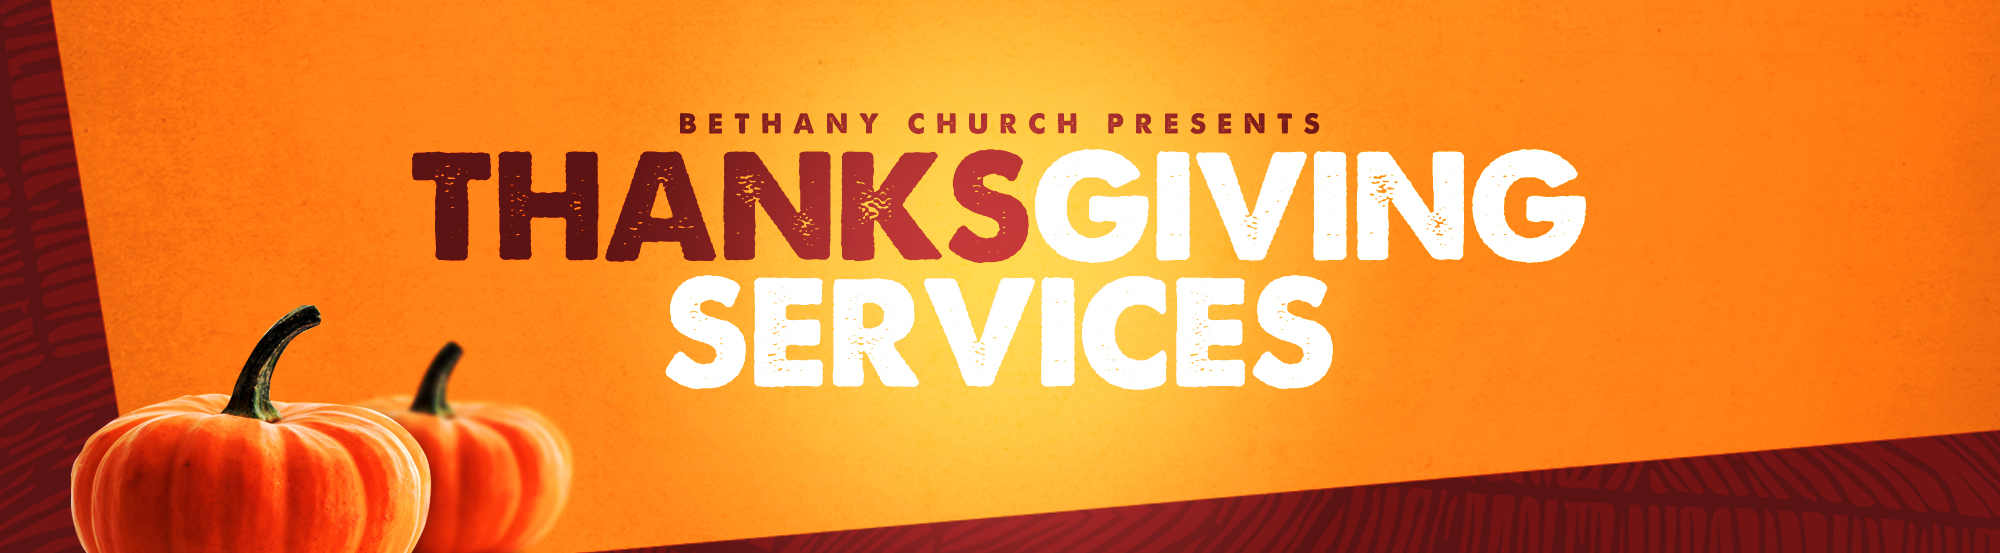 Thanksgiving Services main